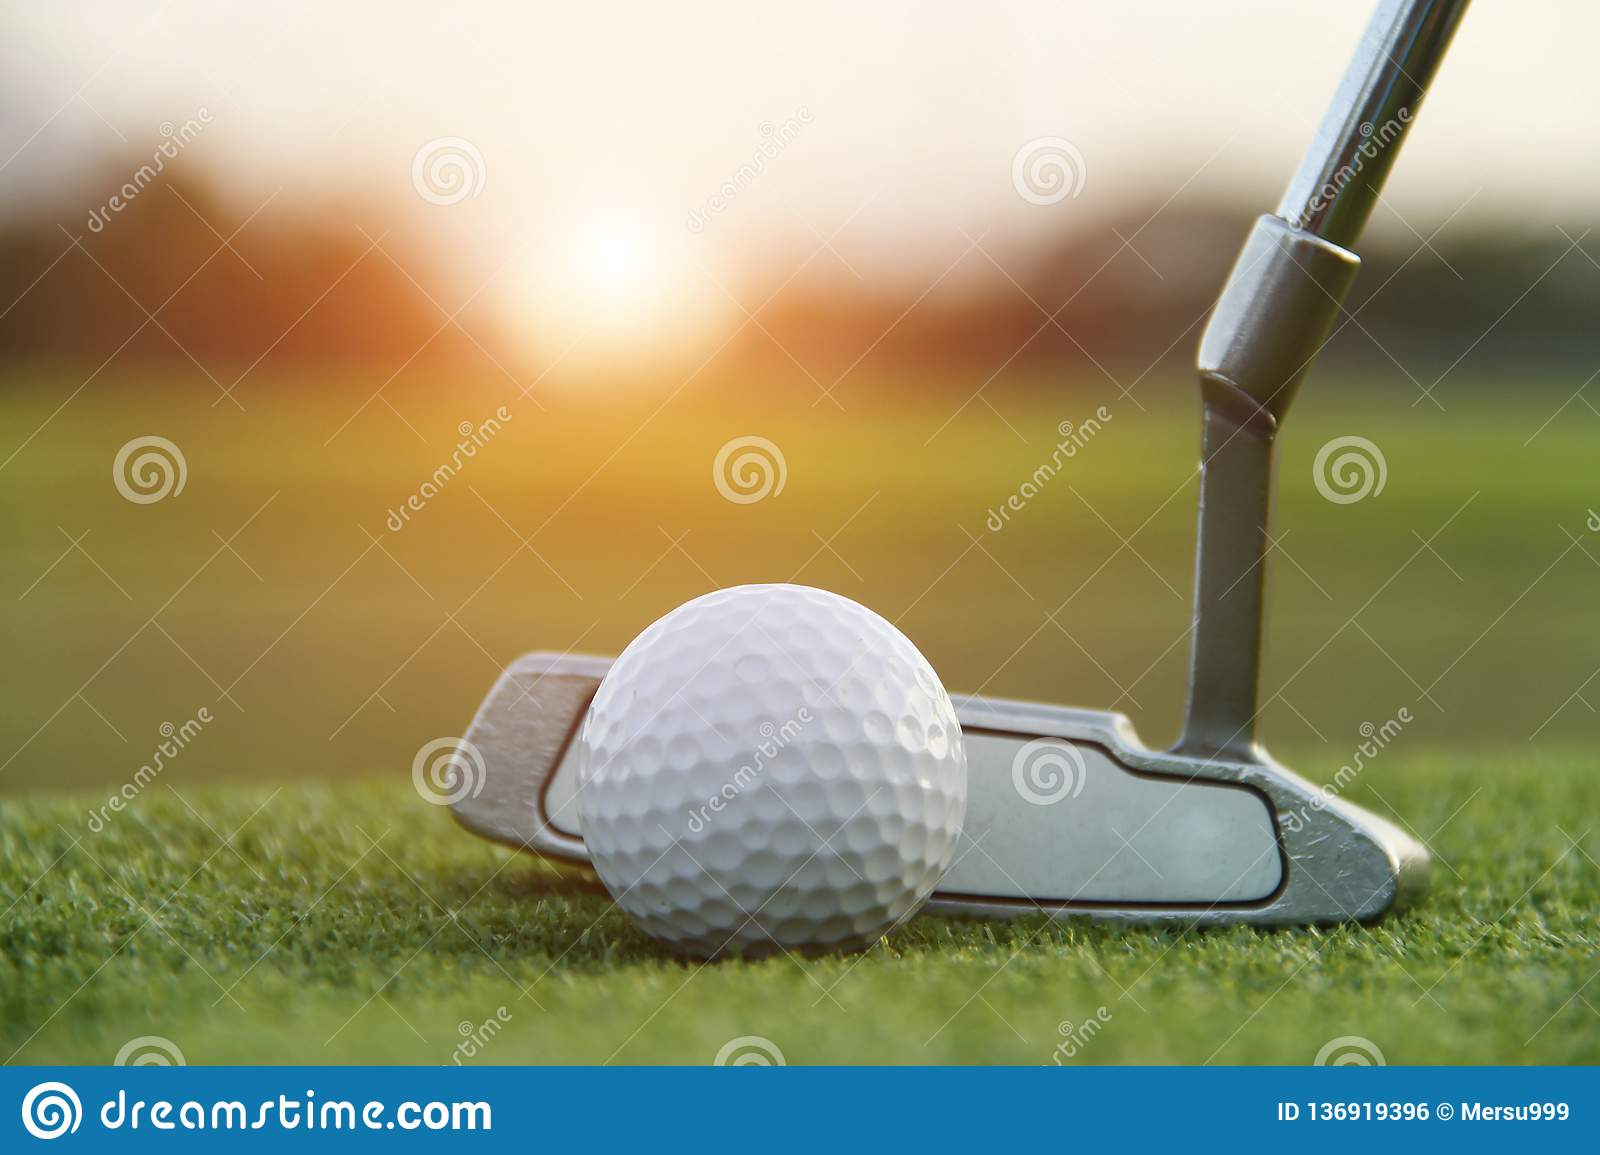 Golf ball and golf club in beautiful golf course at sunset background